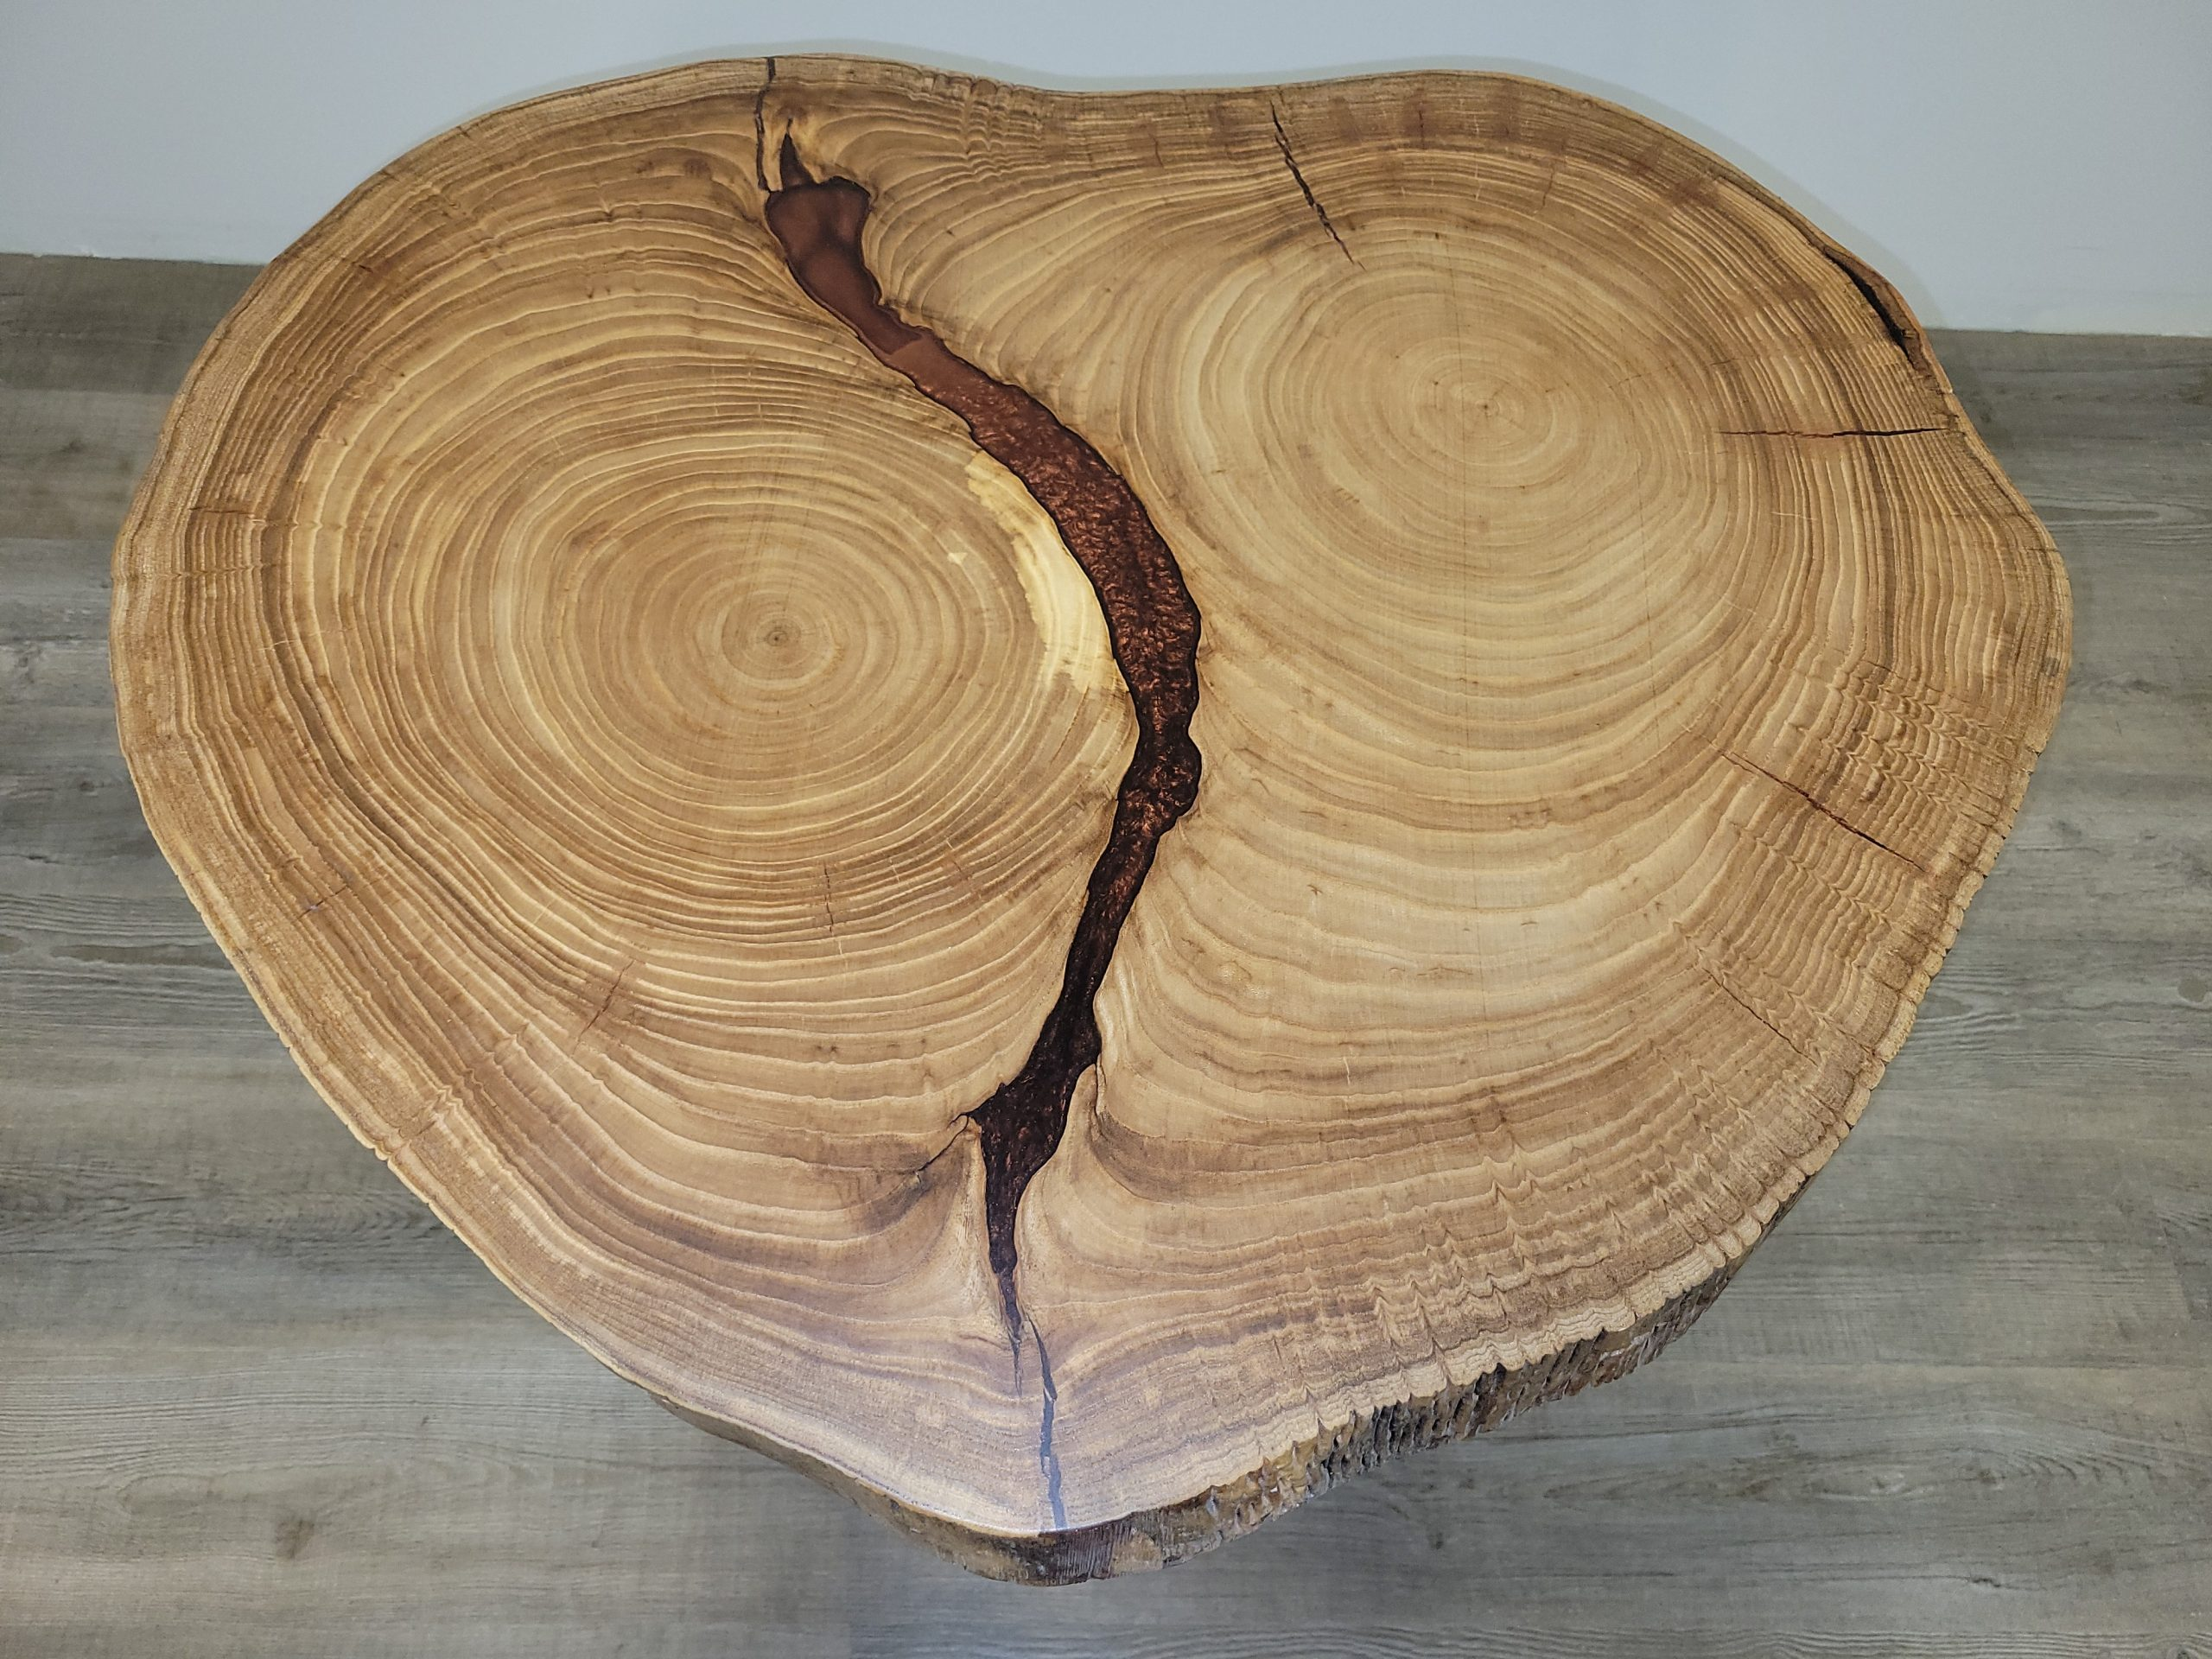 https://competitivewoodcraft.com/wp-content/uploads/2021/03/Live-Edge-Coffee-Table-3-scaled.jpg